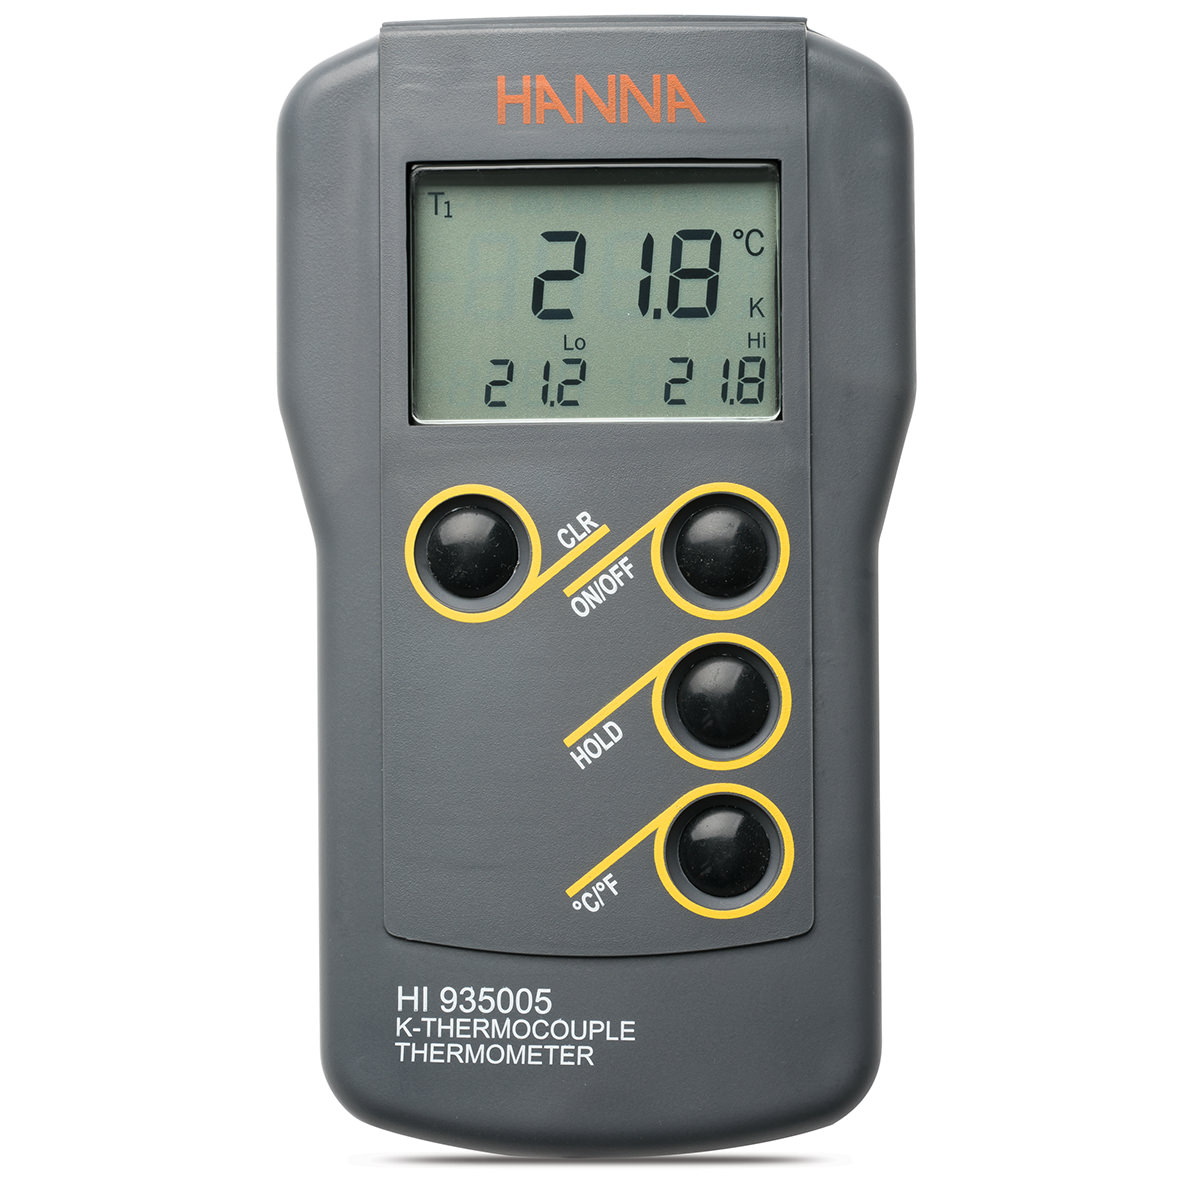 K-Type Thermocouple Thermometer with Auto-off Capability - HI935005